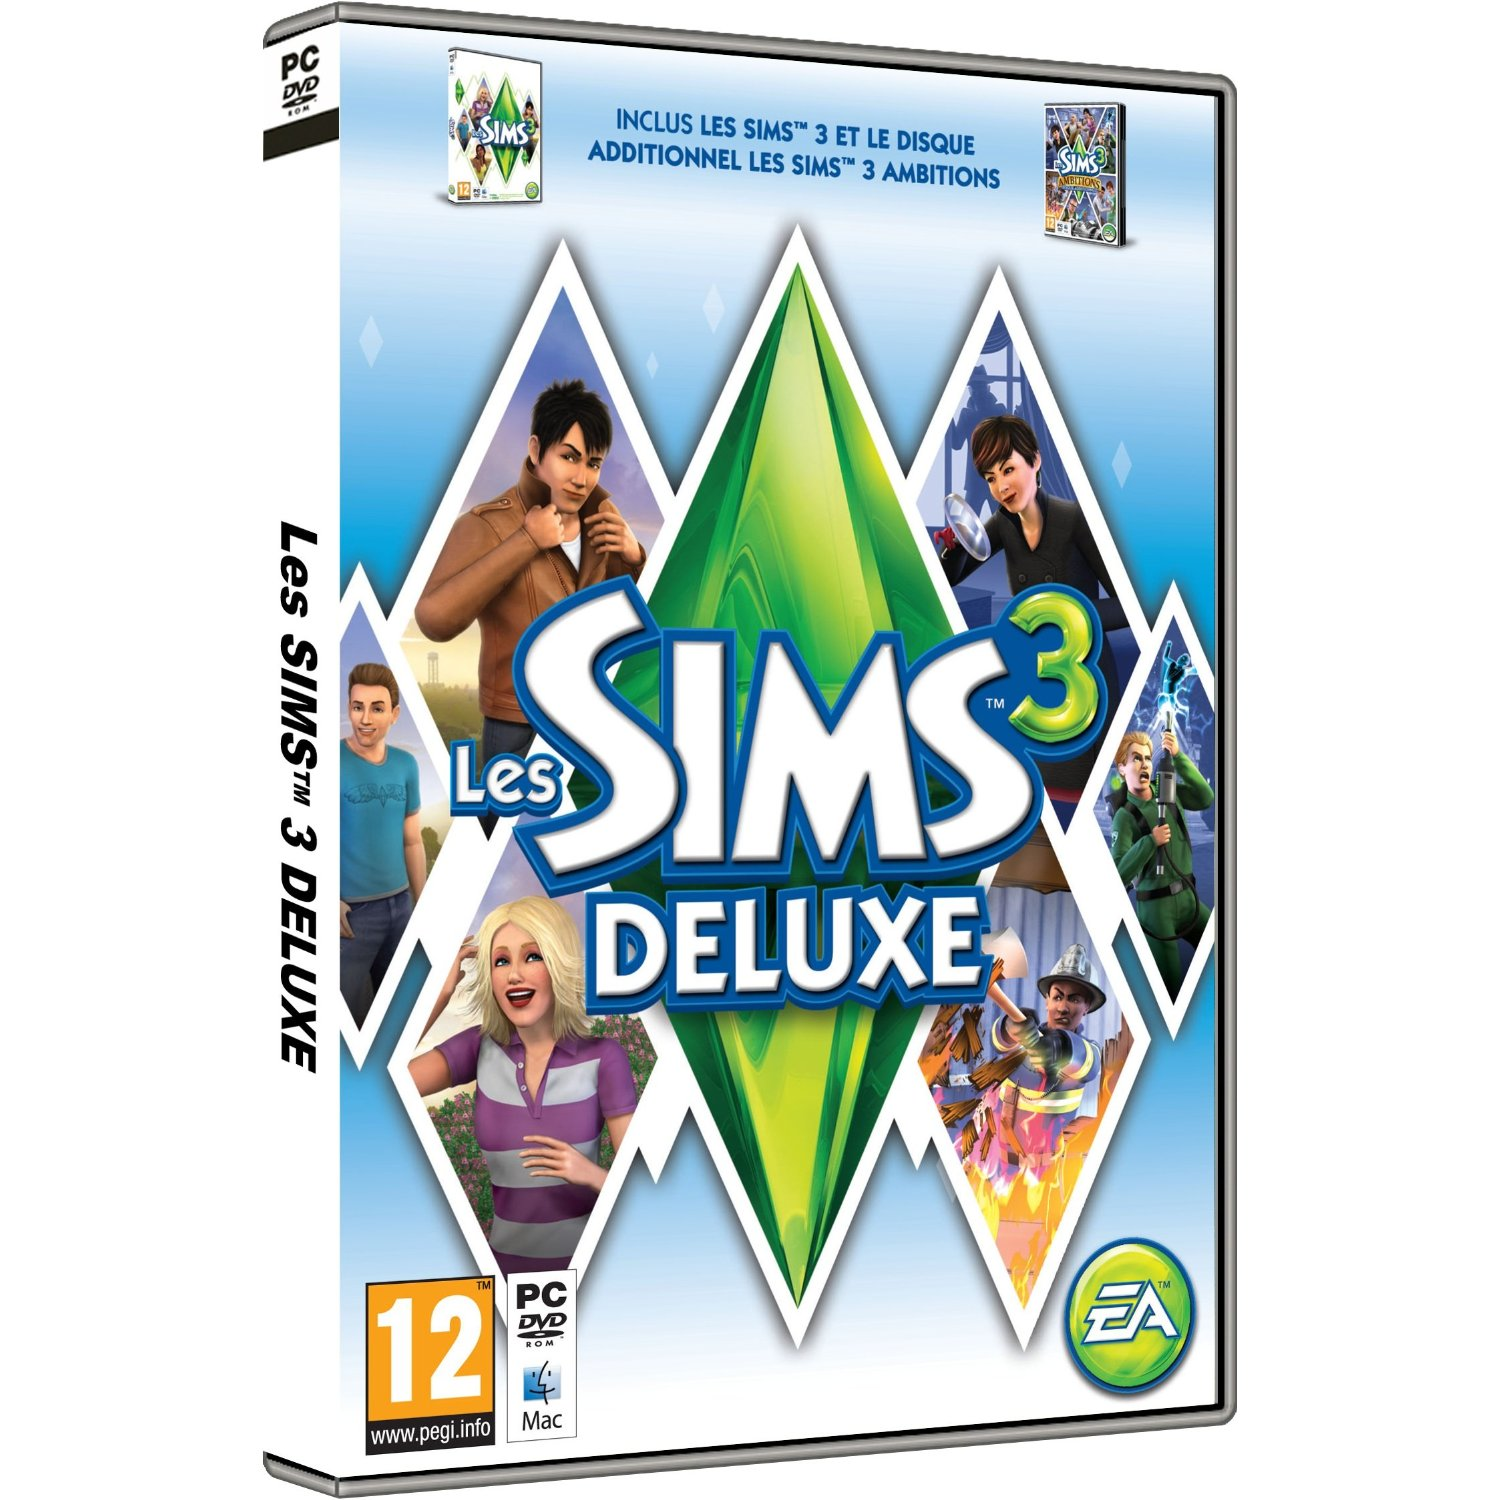 Les Sims 3 Deluxe